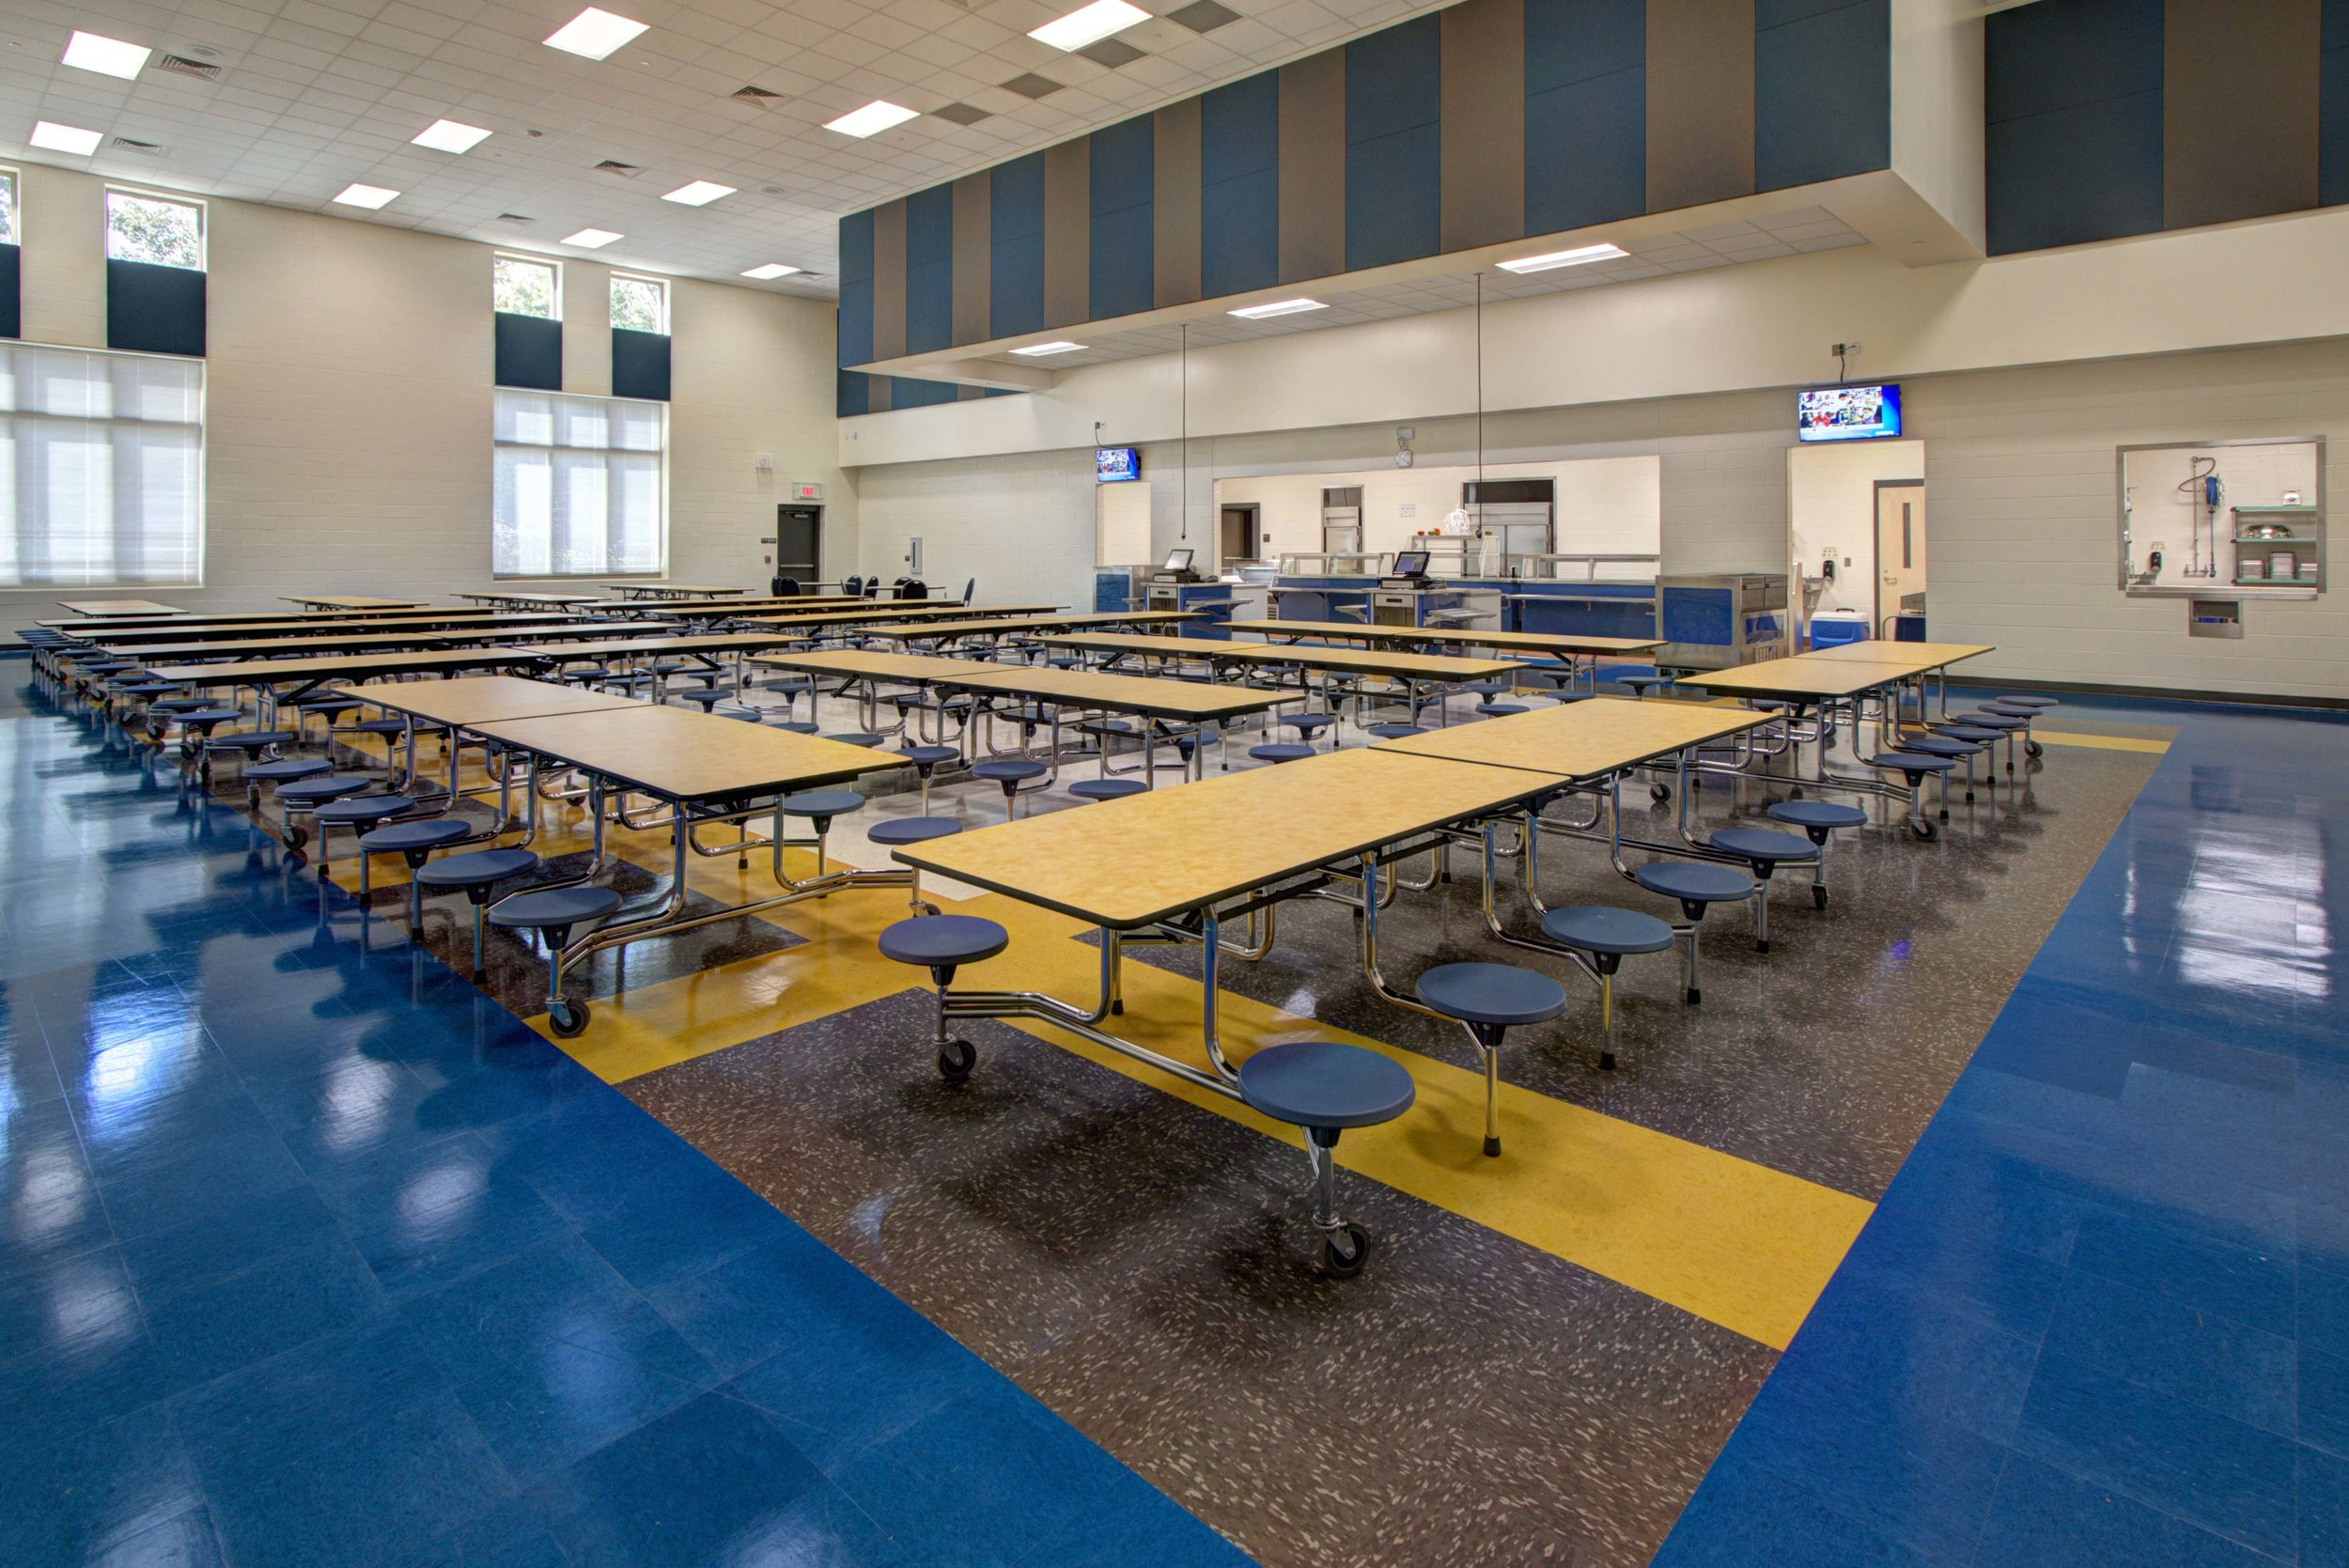 ADW-K-12-Education-Statesville-Road-Elementary-School-Charlotte-NC-Cafeteria.JPG